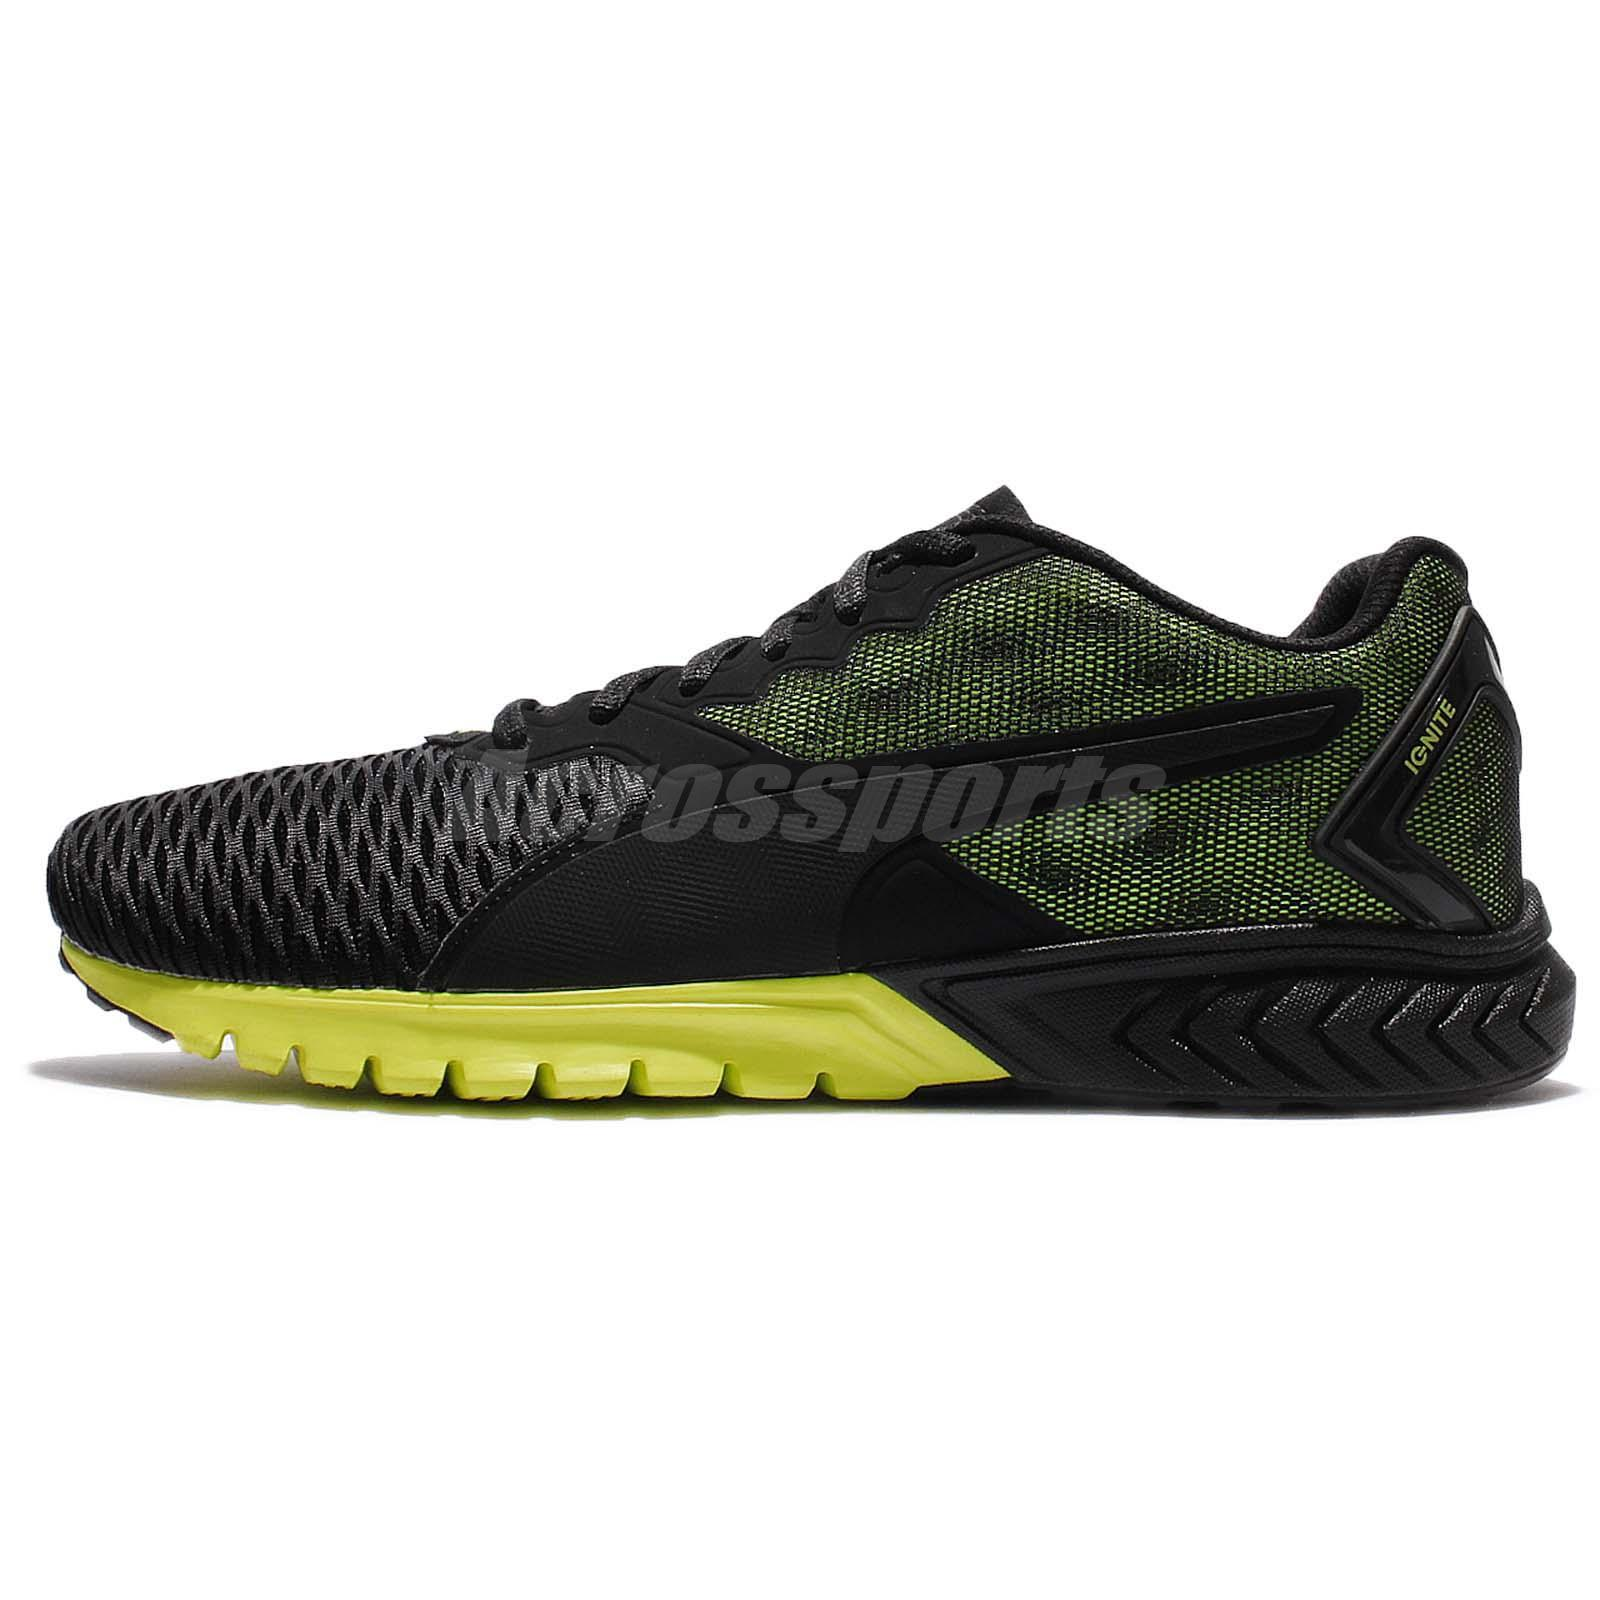 Puma Ignite Dual Black Safety Yellow Men Running Shoes Sneakers 189094-07